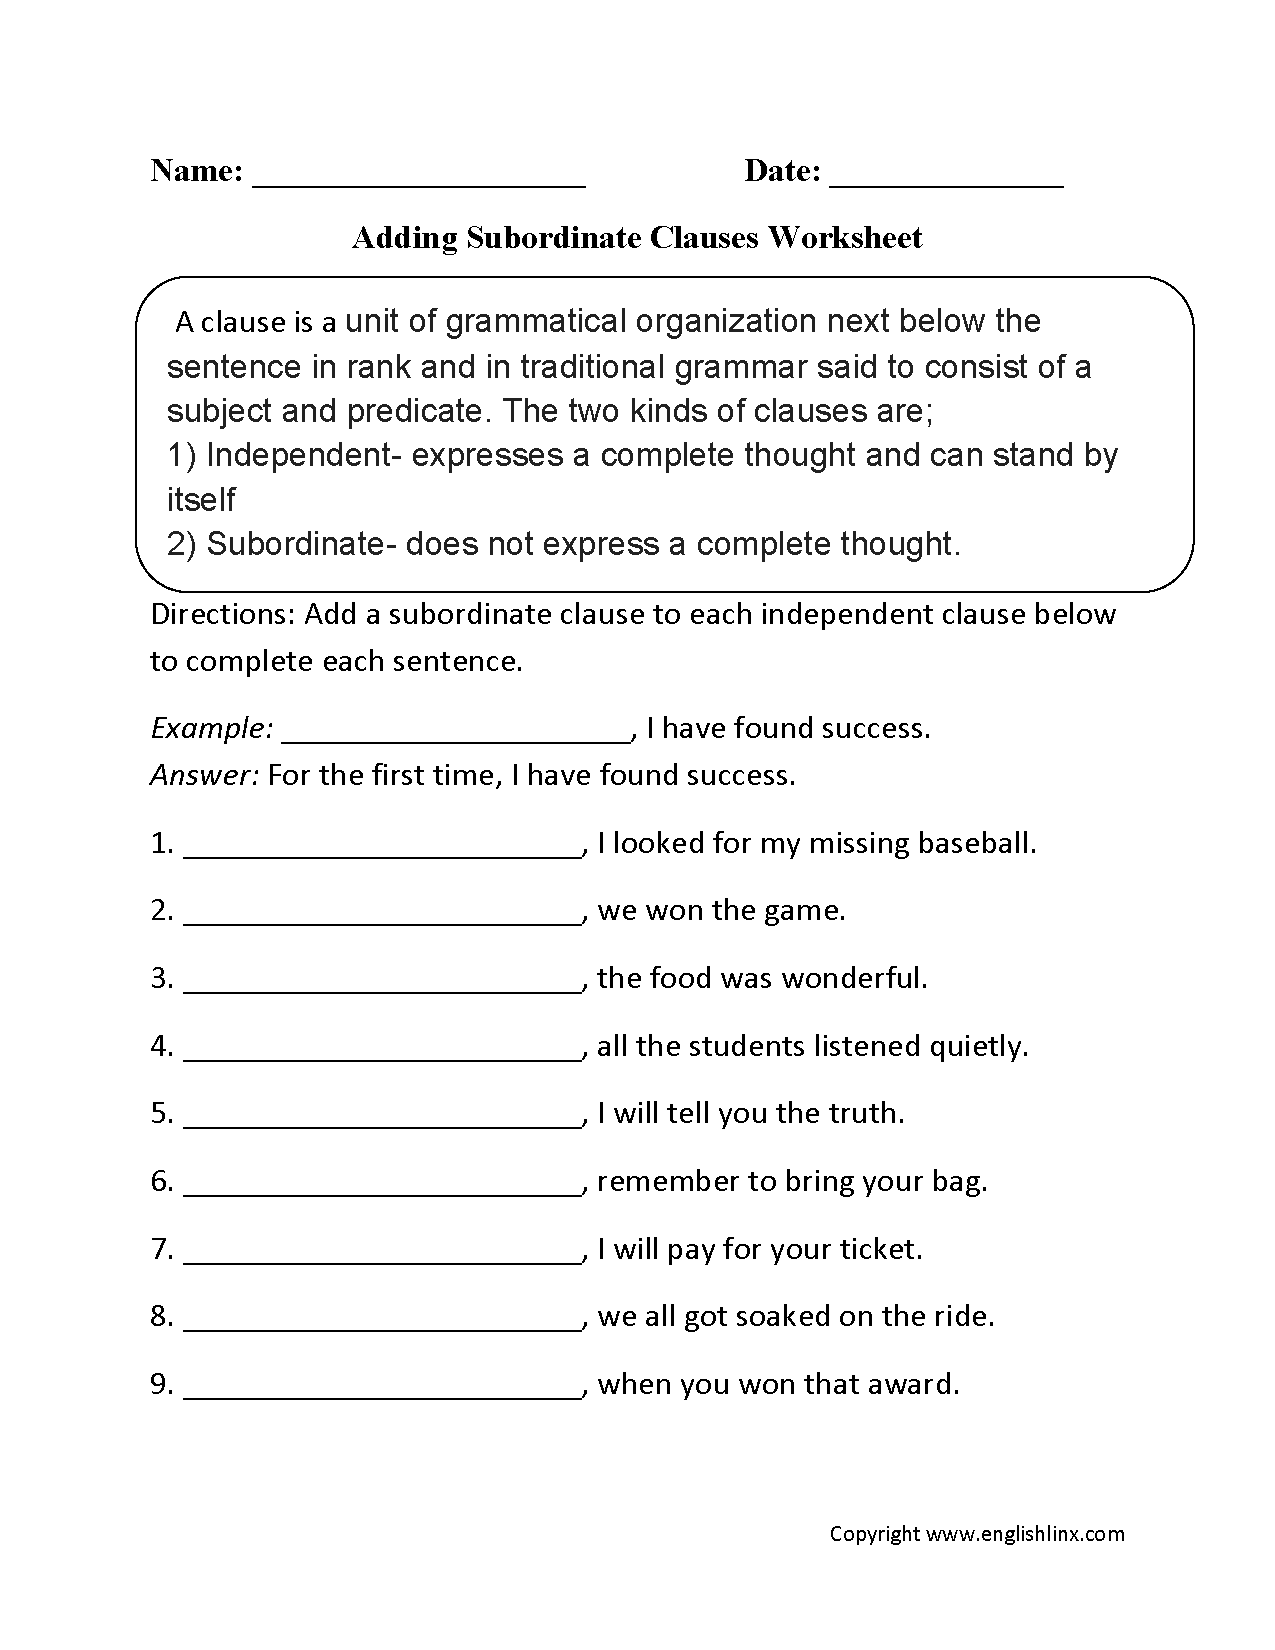 Worksheets Phrases And Clauses Worksheets adding subordinate clauses worksheet reading and writing these clause worksheets are great for working with use the beginner intermediate or advanced level